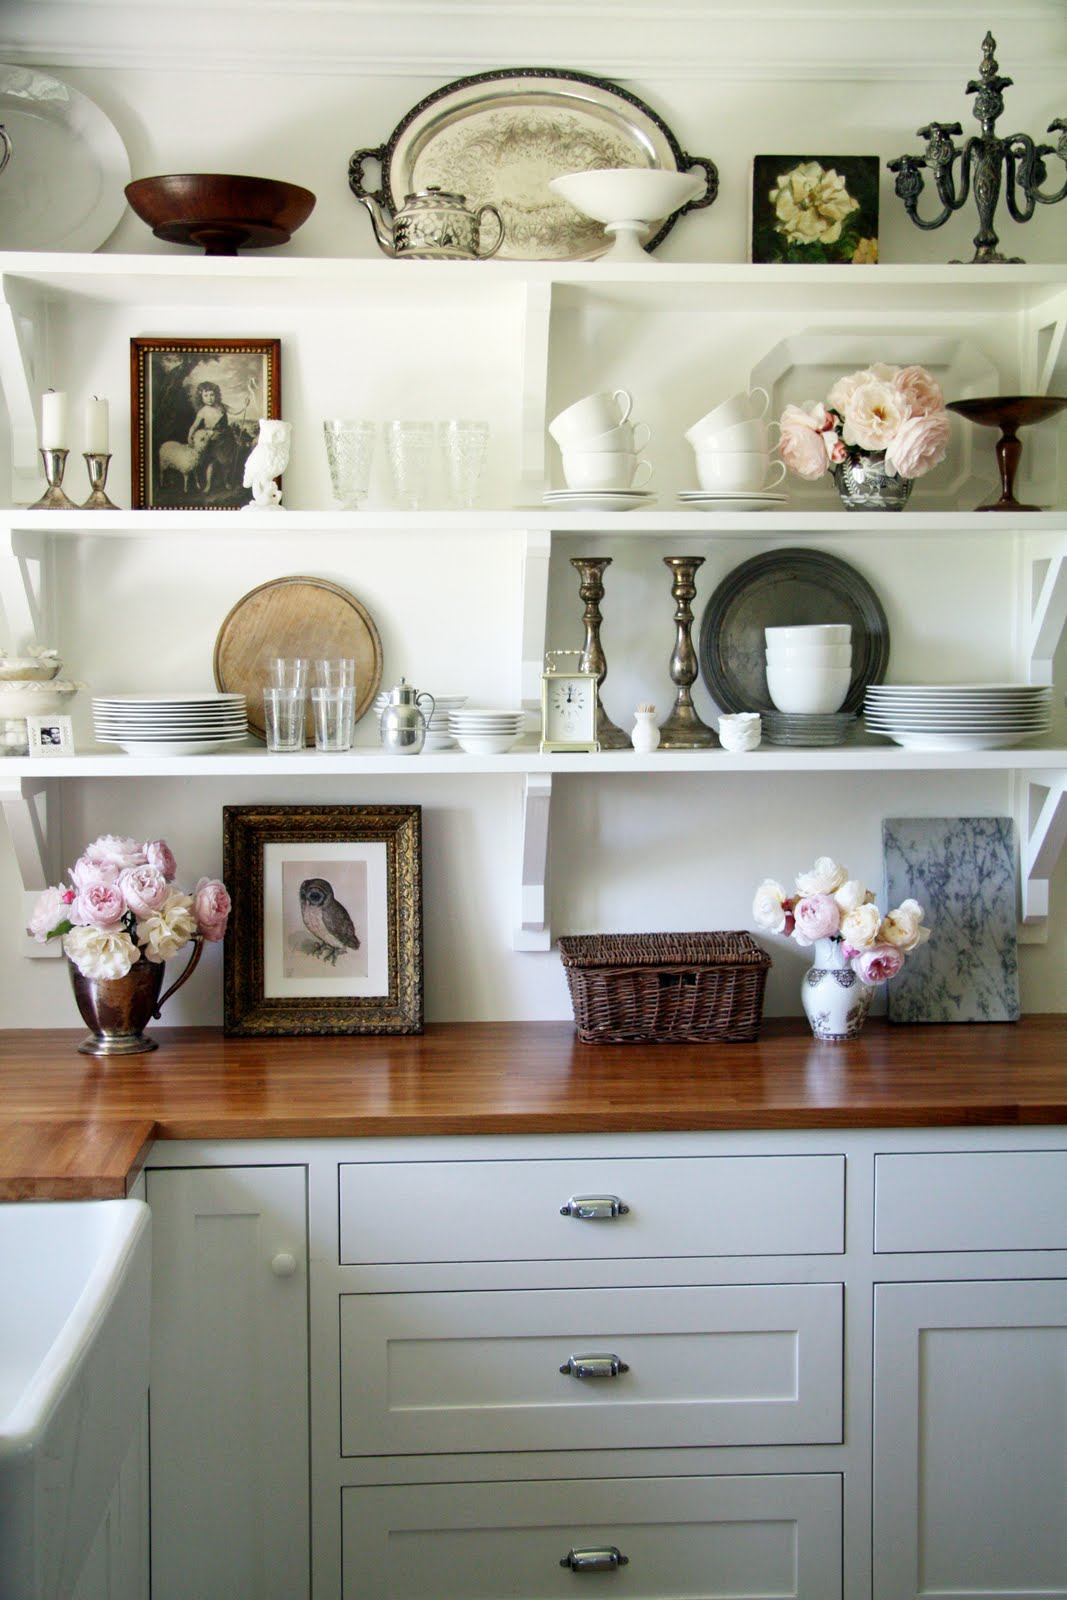 Kitchen planning and design open shelves in your kitchen for Shelving in kitchen